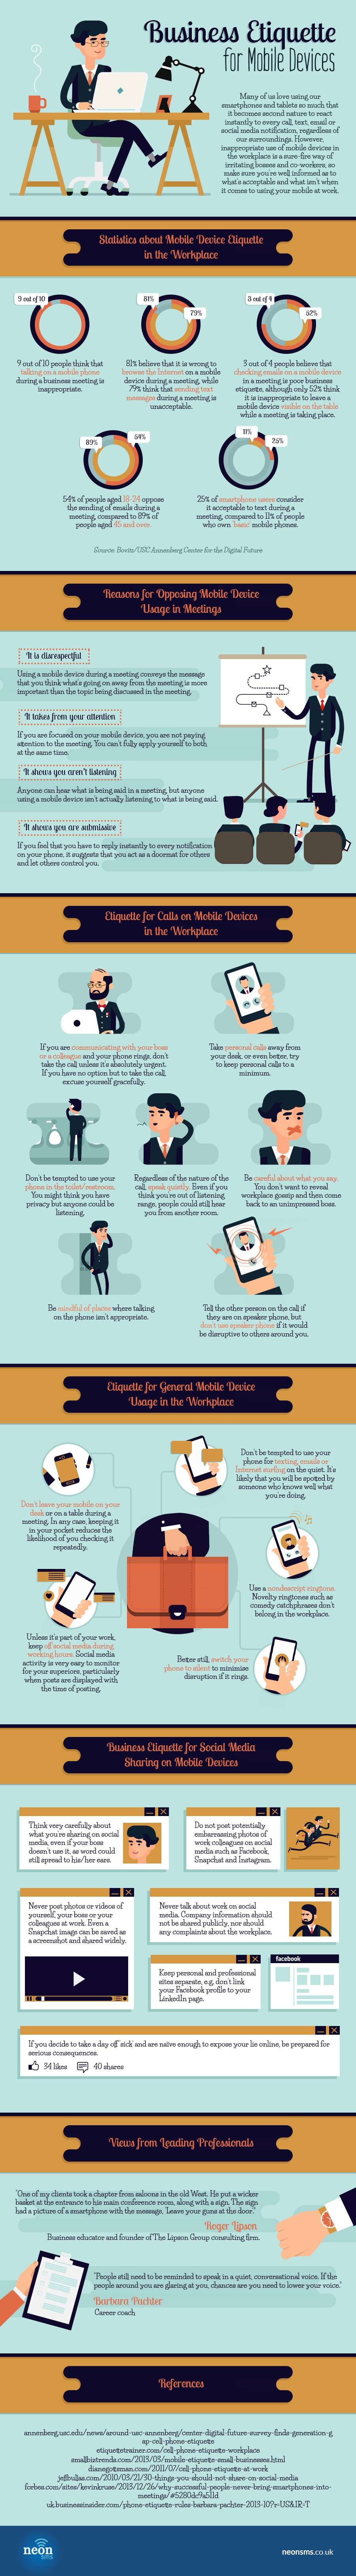 business-etiquette-for-mobile-devices-infographic